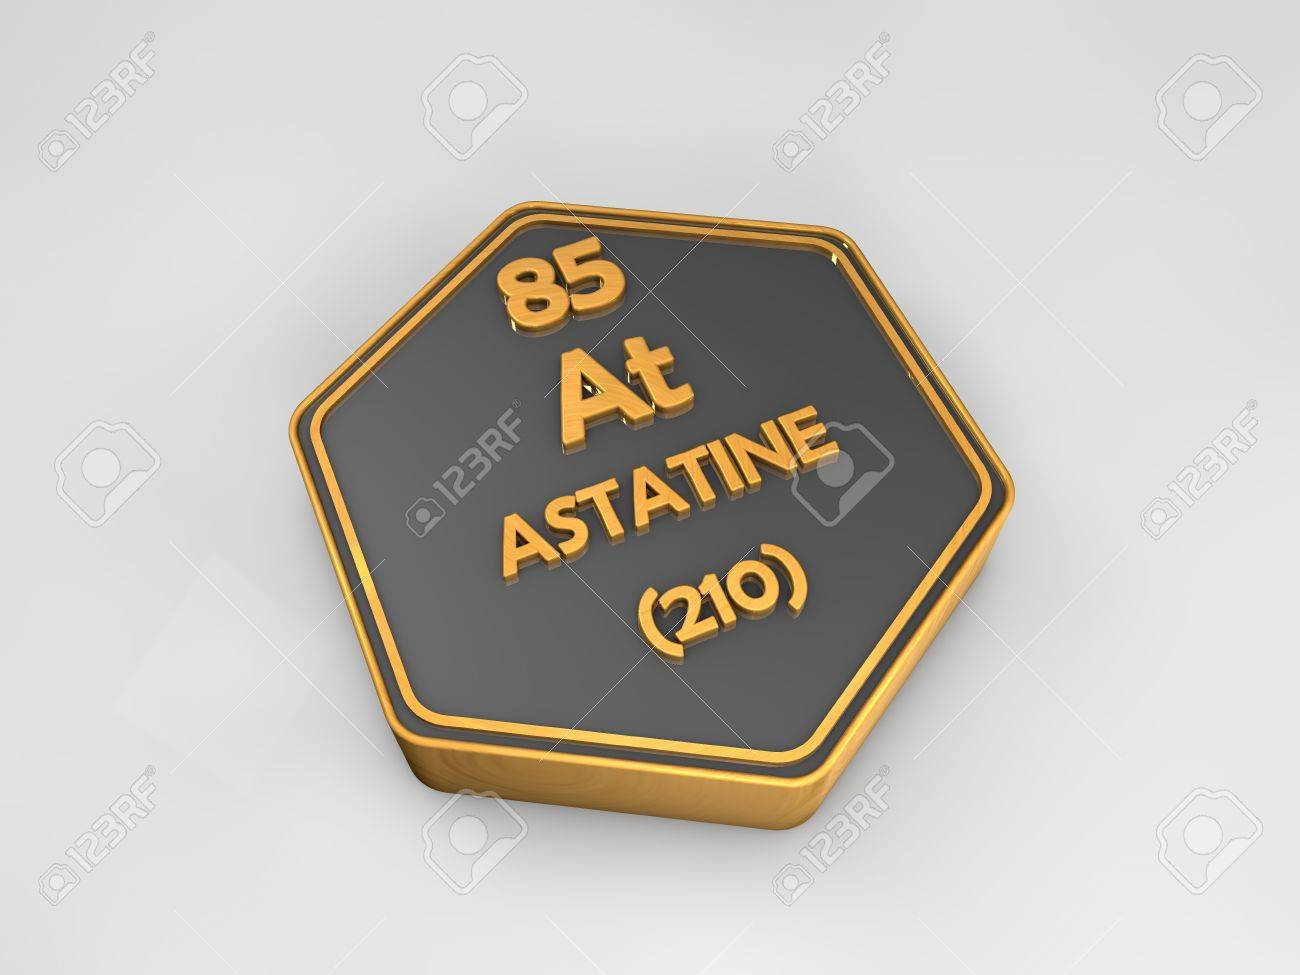 Astatine at chemical element periodic table hexagonal shape astatine at chemical element periodic table hexagonal shape 3d render stock photo 82062117 gamestrikefo Image collections